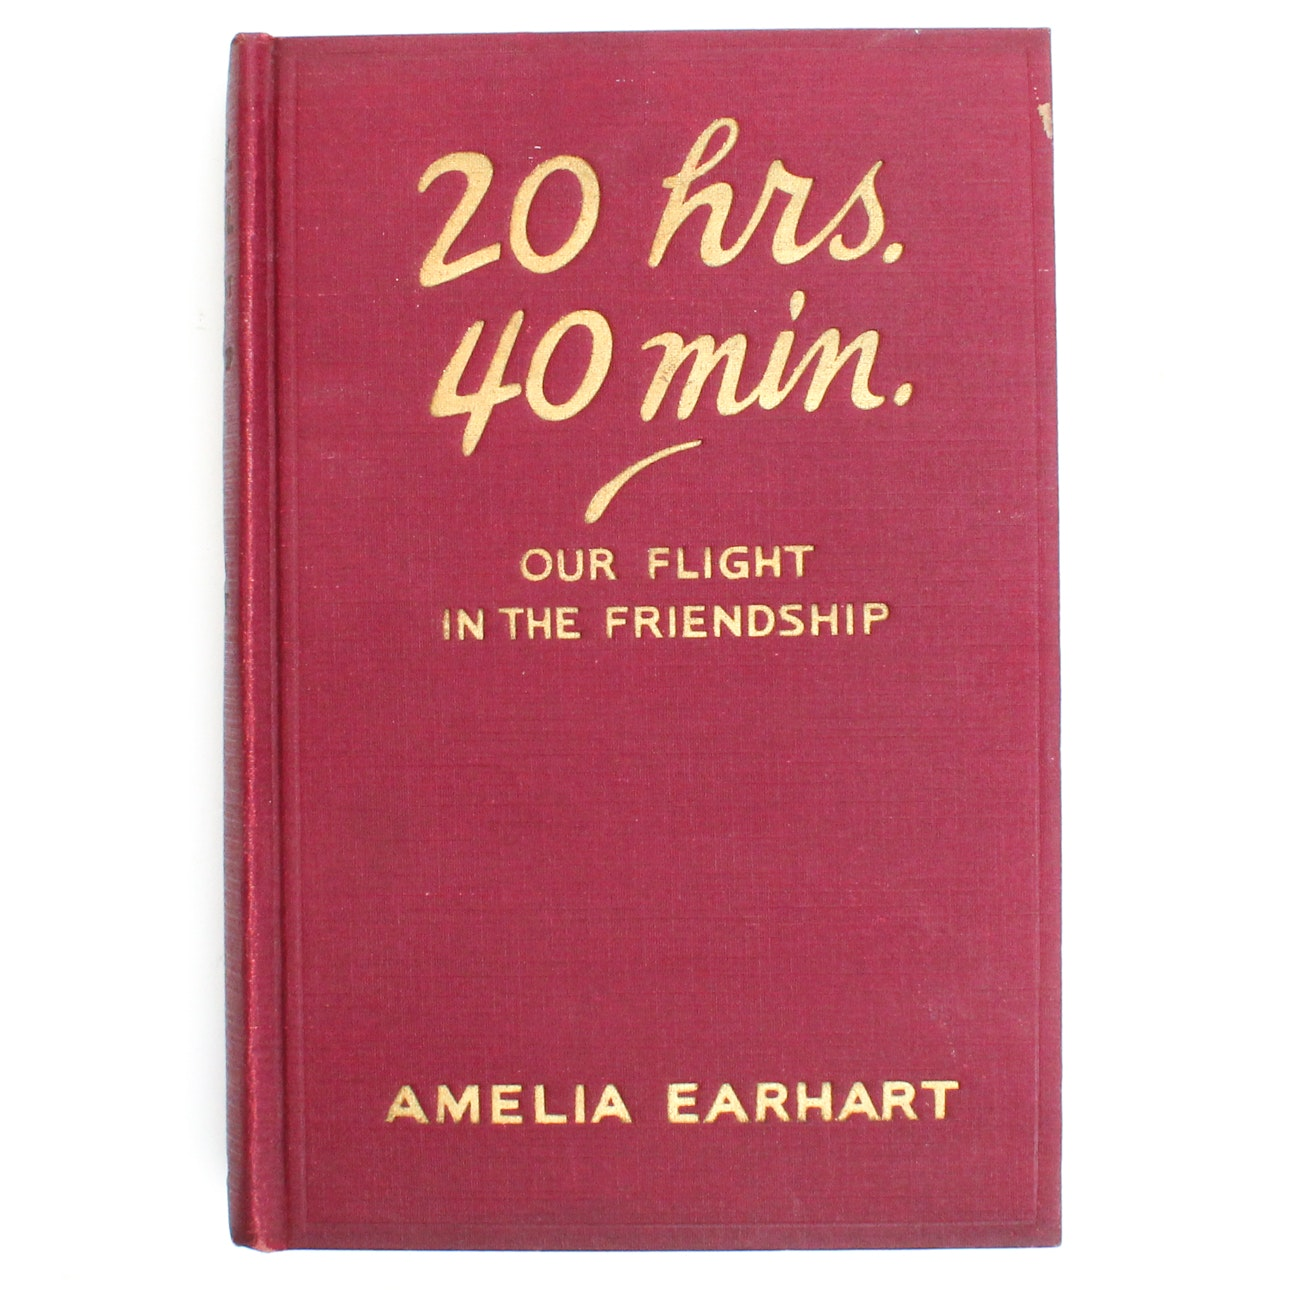 "Signed First Edition ""20 hrs. 40 mins. by Amelia Earhart"